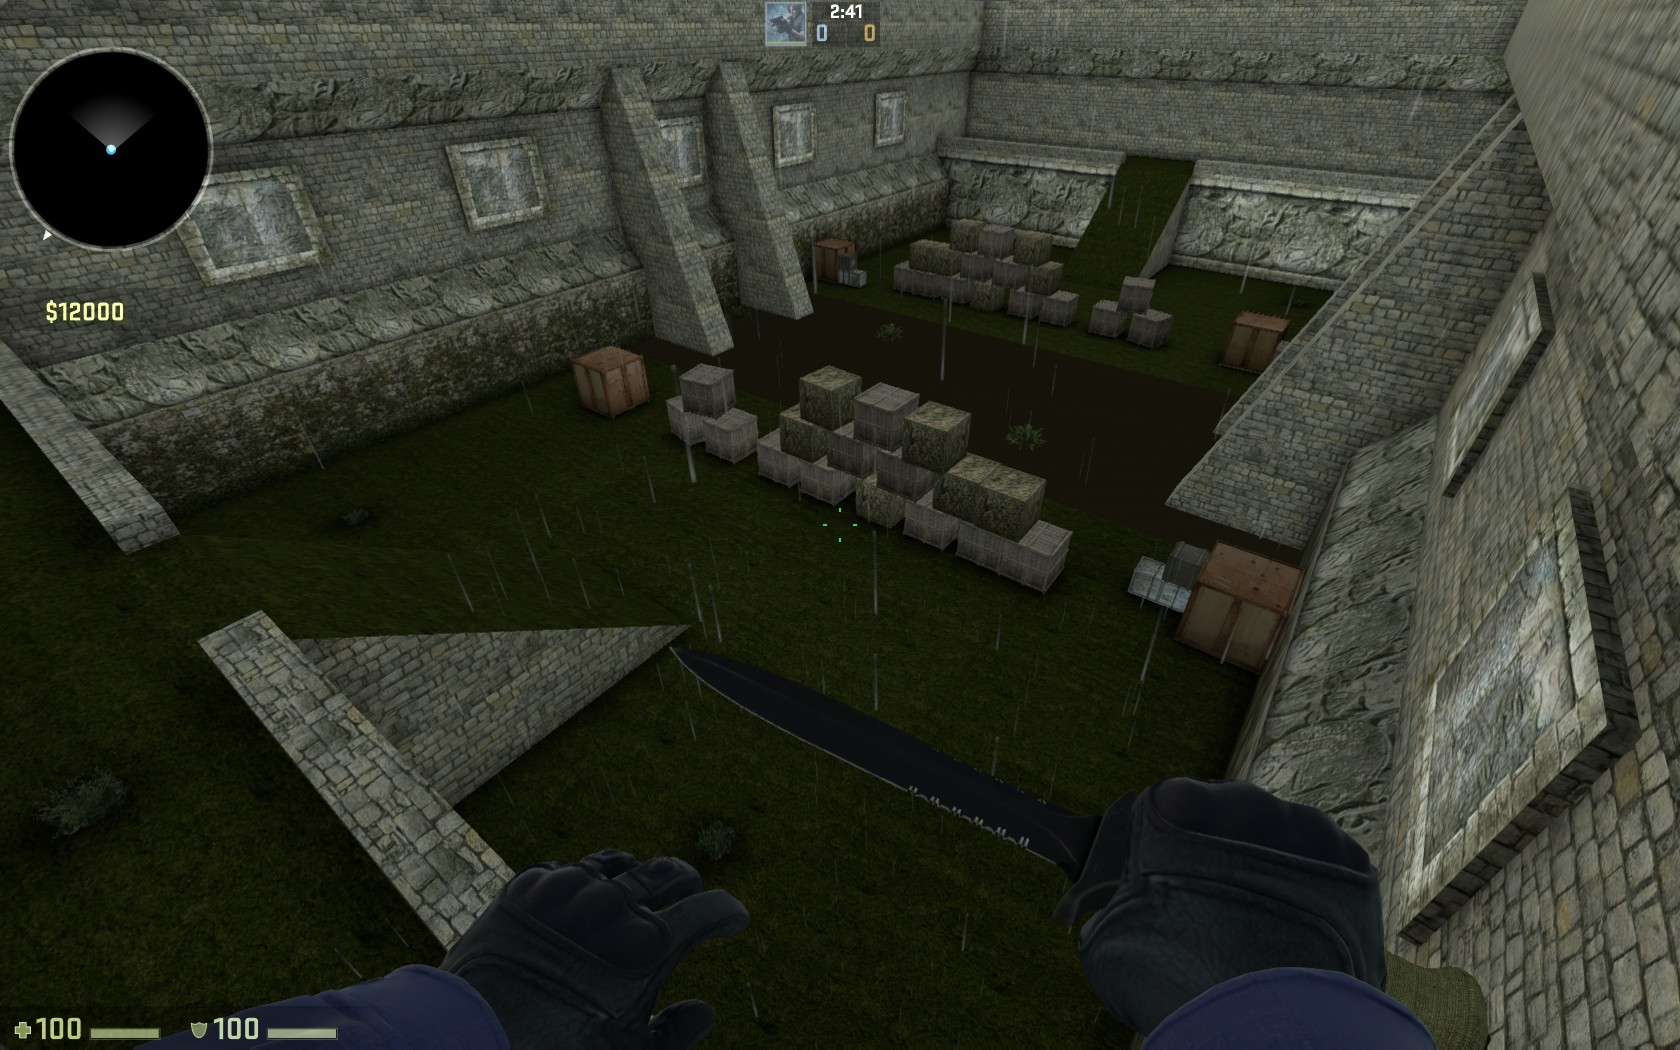 Counter-Strike: Global Offensive Map - aim_headshot2_csgo screenshot 1